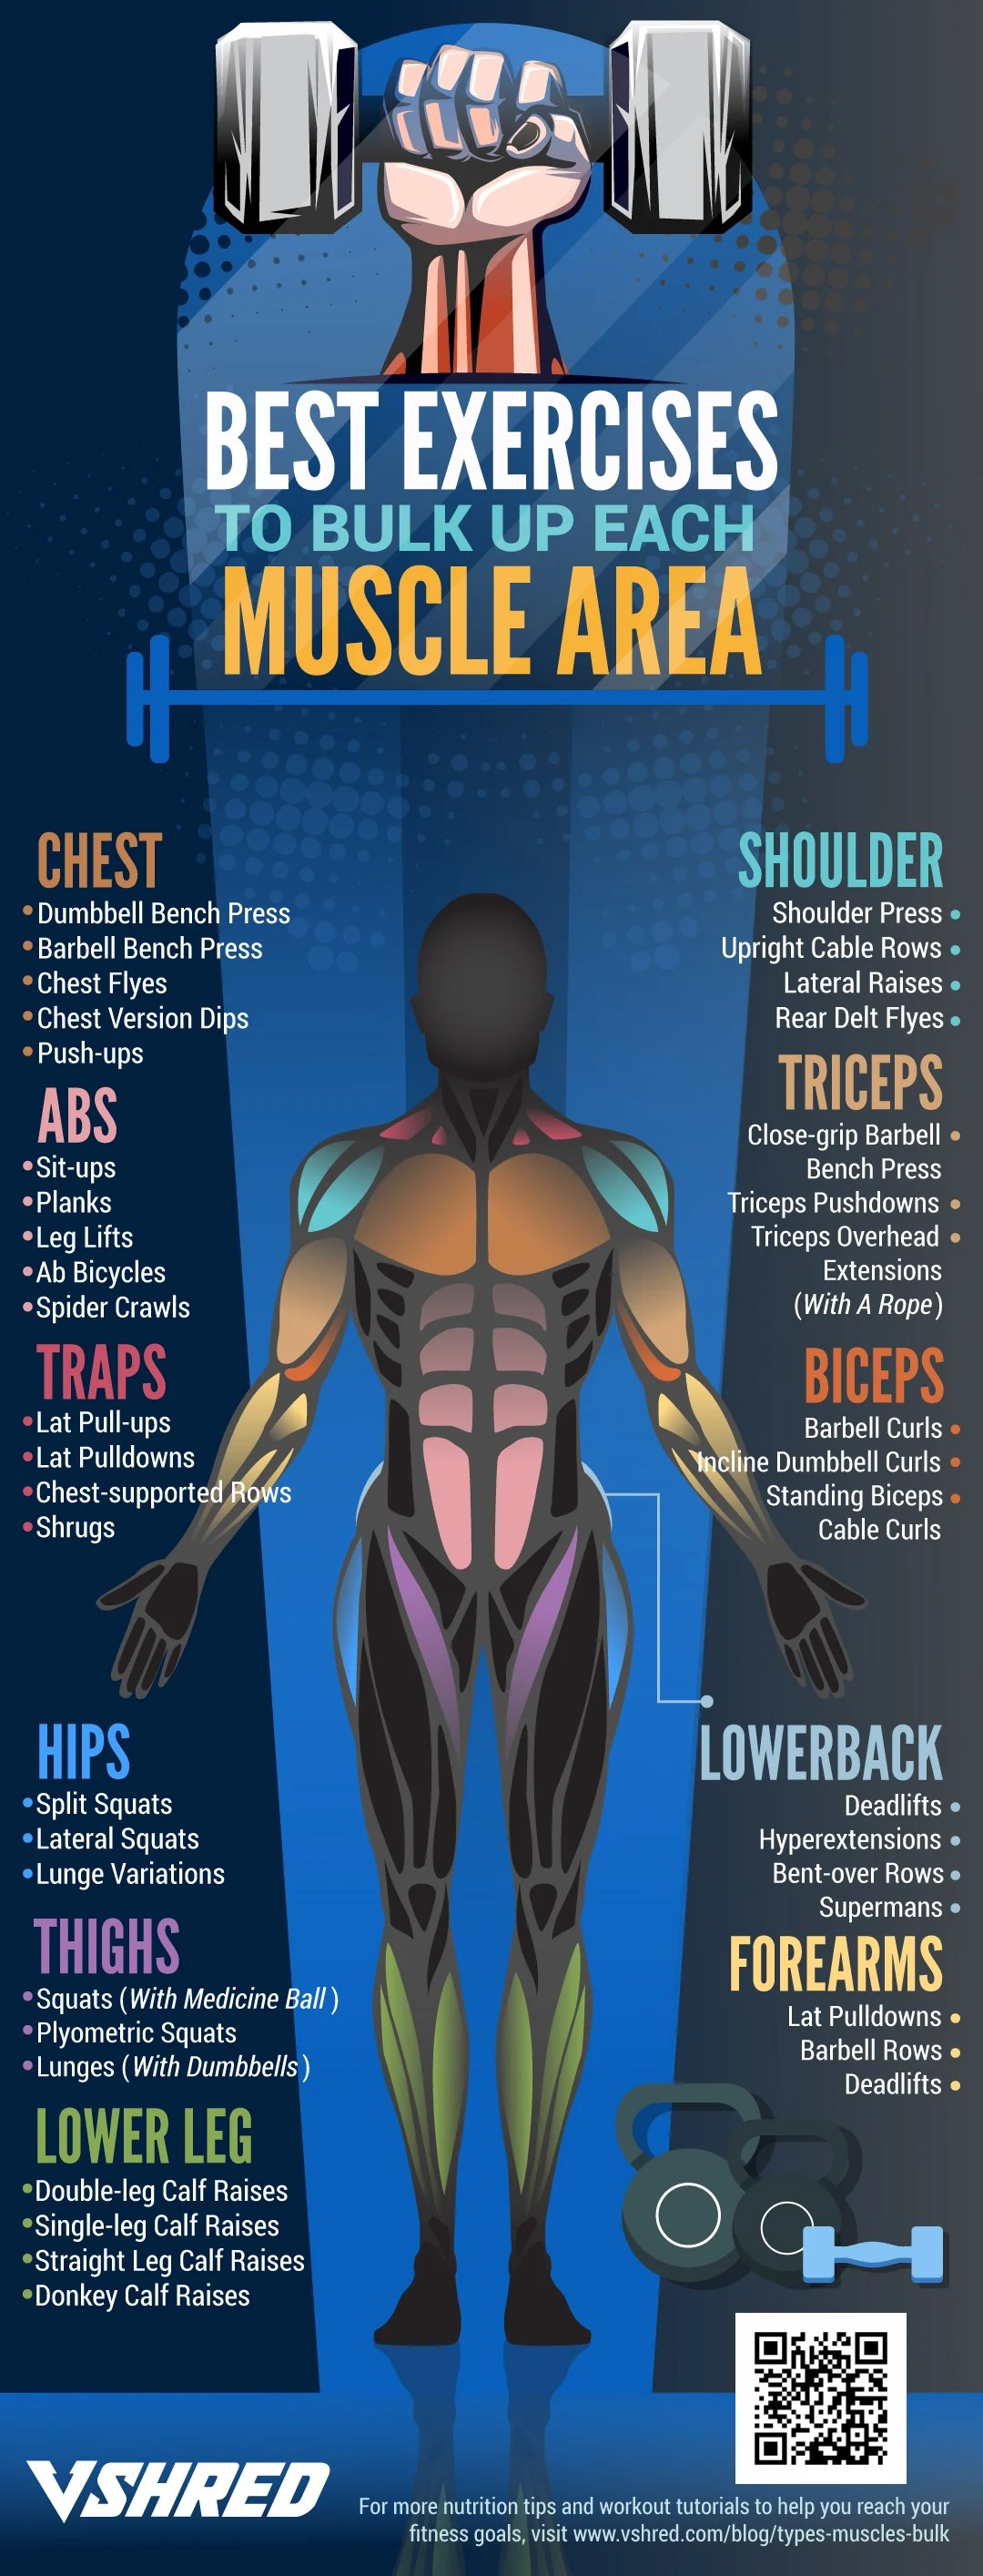 infographic | Best Exercises To Bulk Up Each Muscle Area | Best of 2018 on V Shred